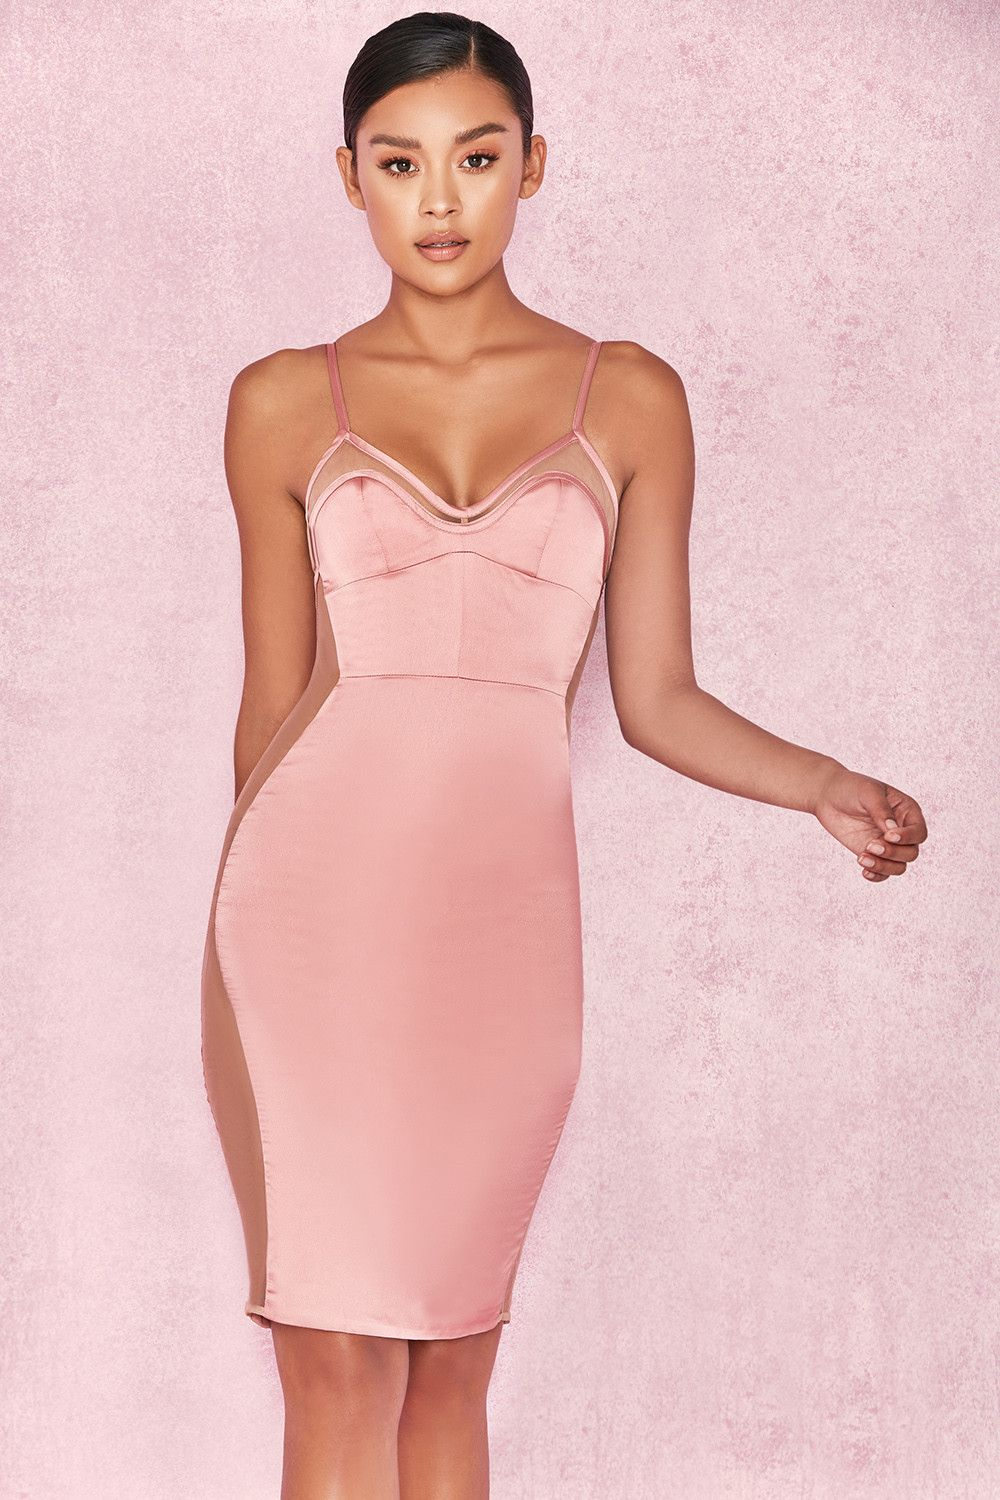 a551fe5859f6 Clothing : Bodycon Dresses : 'Antares' Dusty Pink Satin Bralet Dress ...